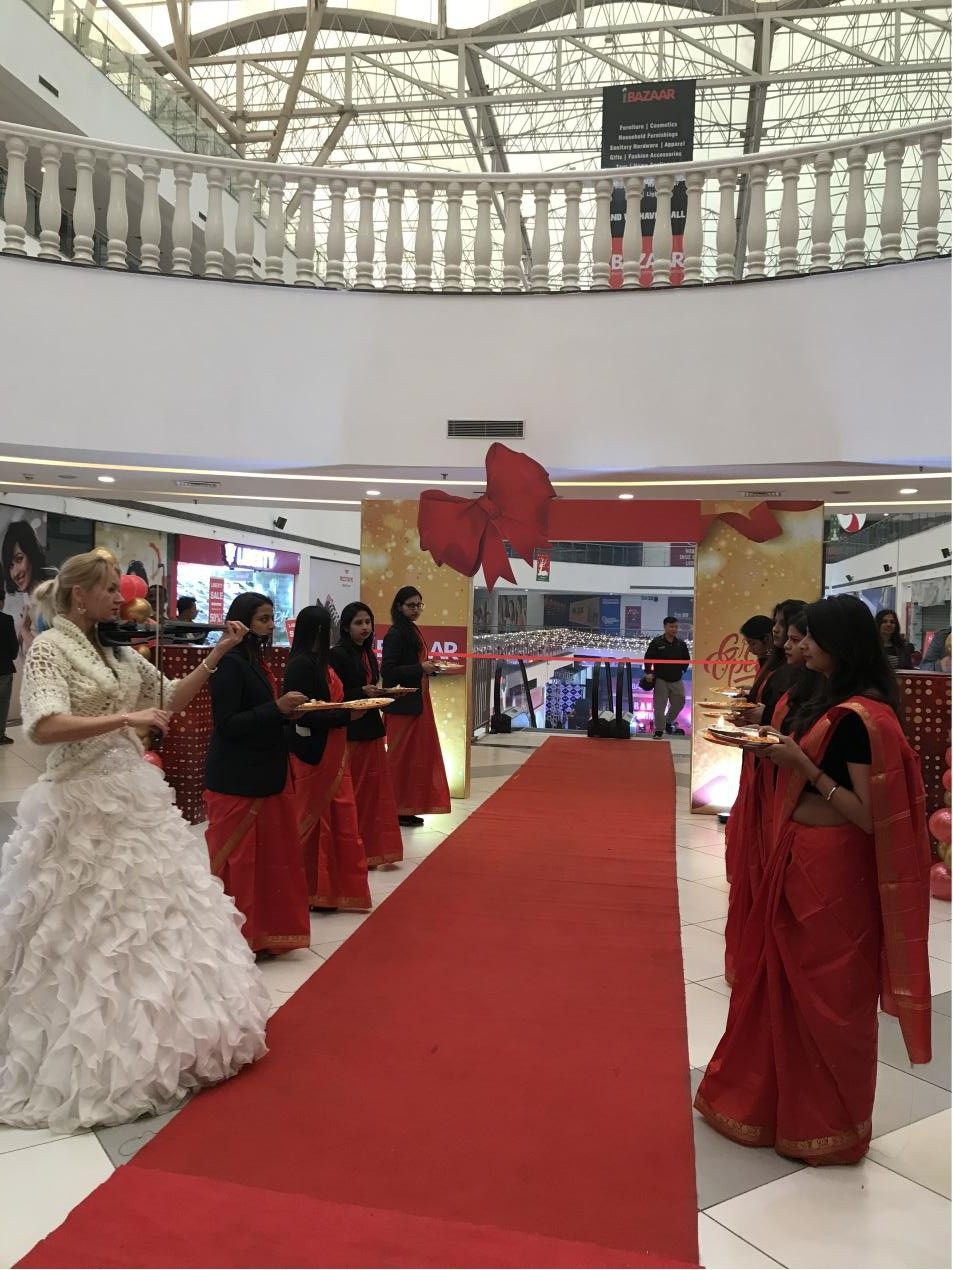 news-Runcheng Chuangzhan-RCCZ Exhibition Hall was settled in India BAZAAR-img-1